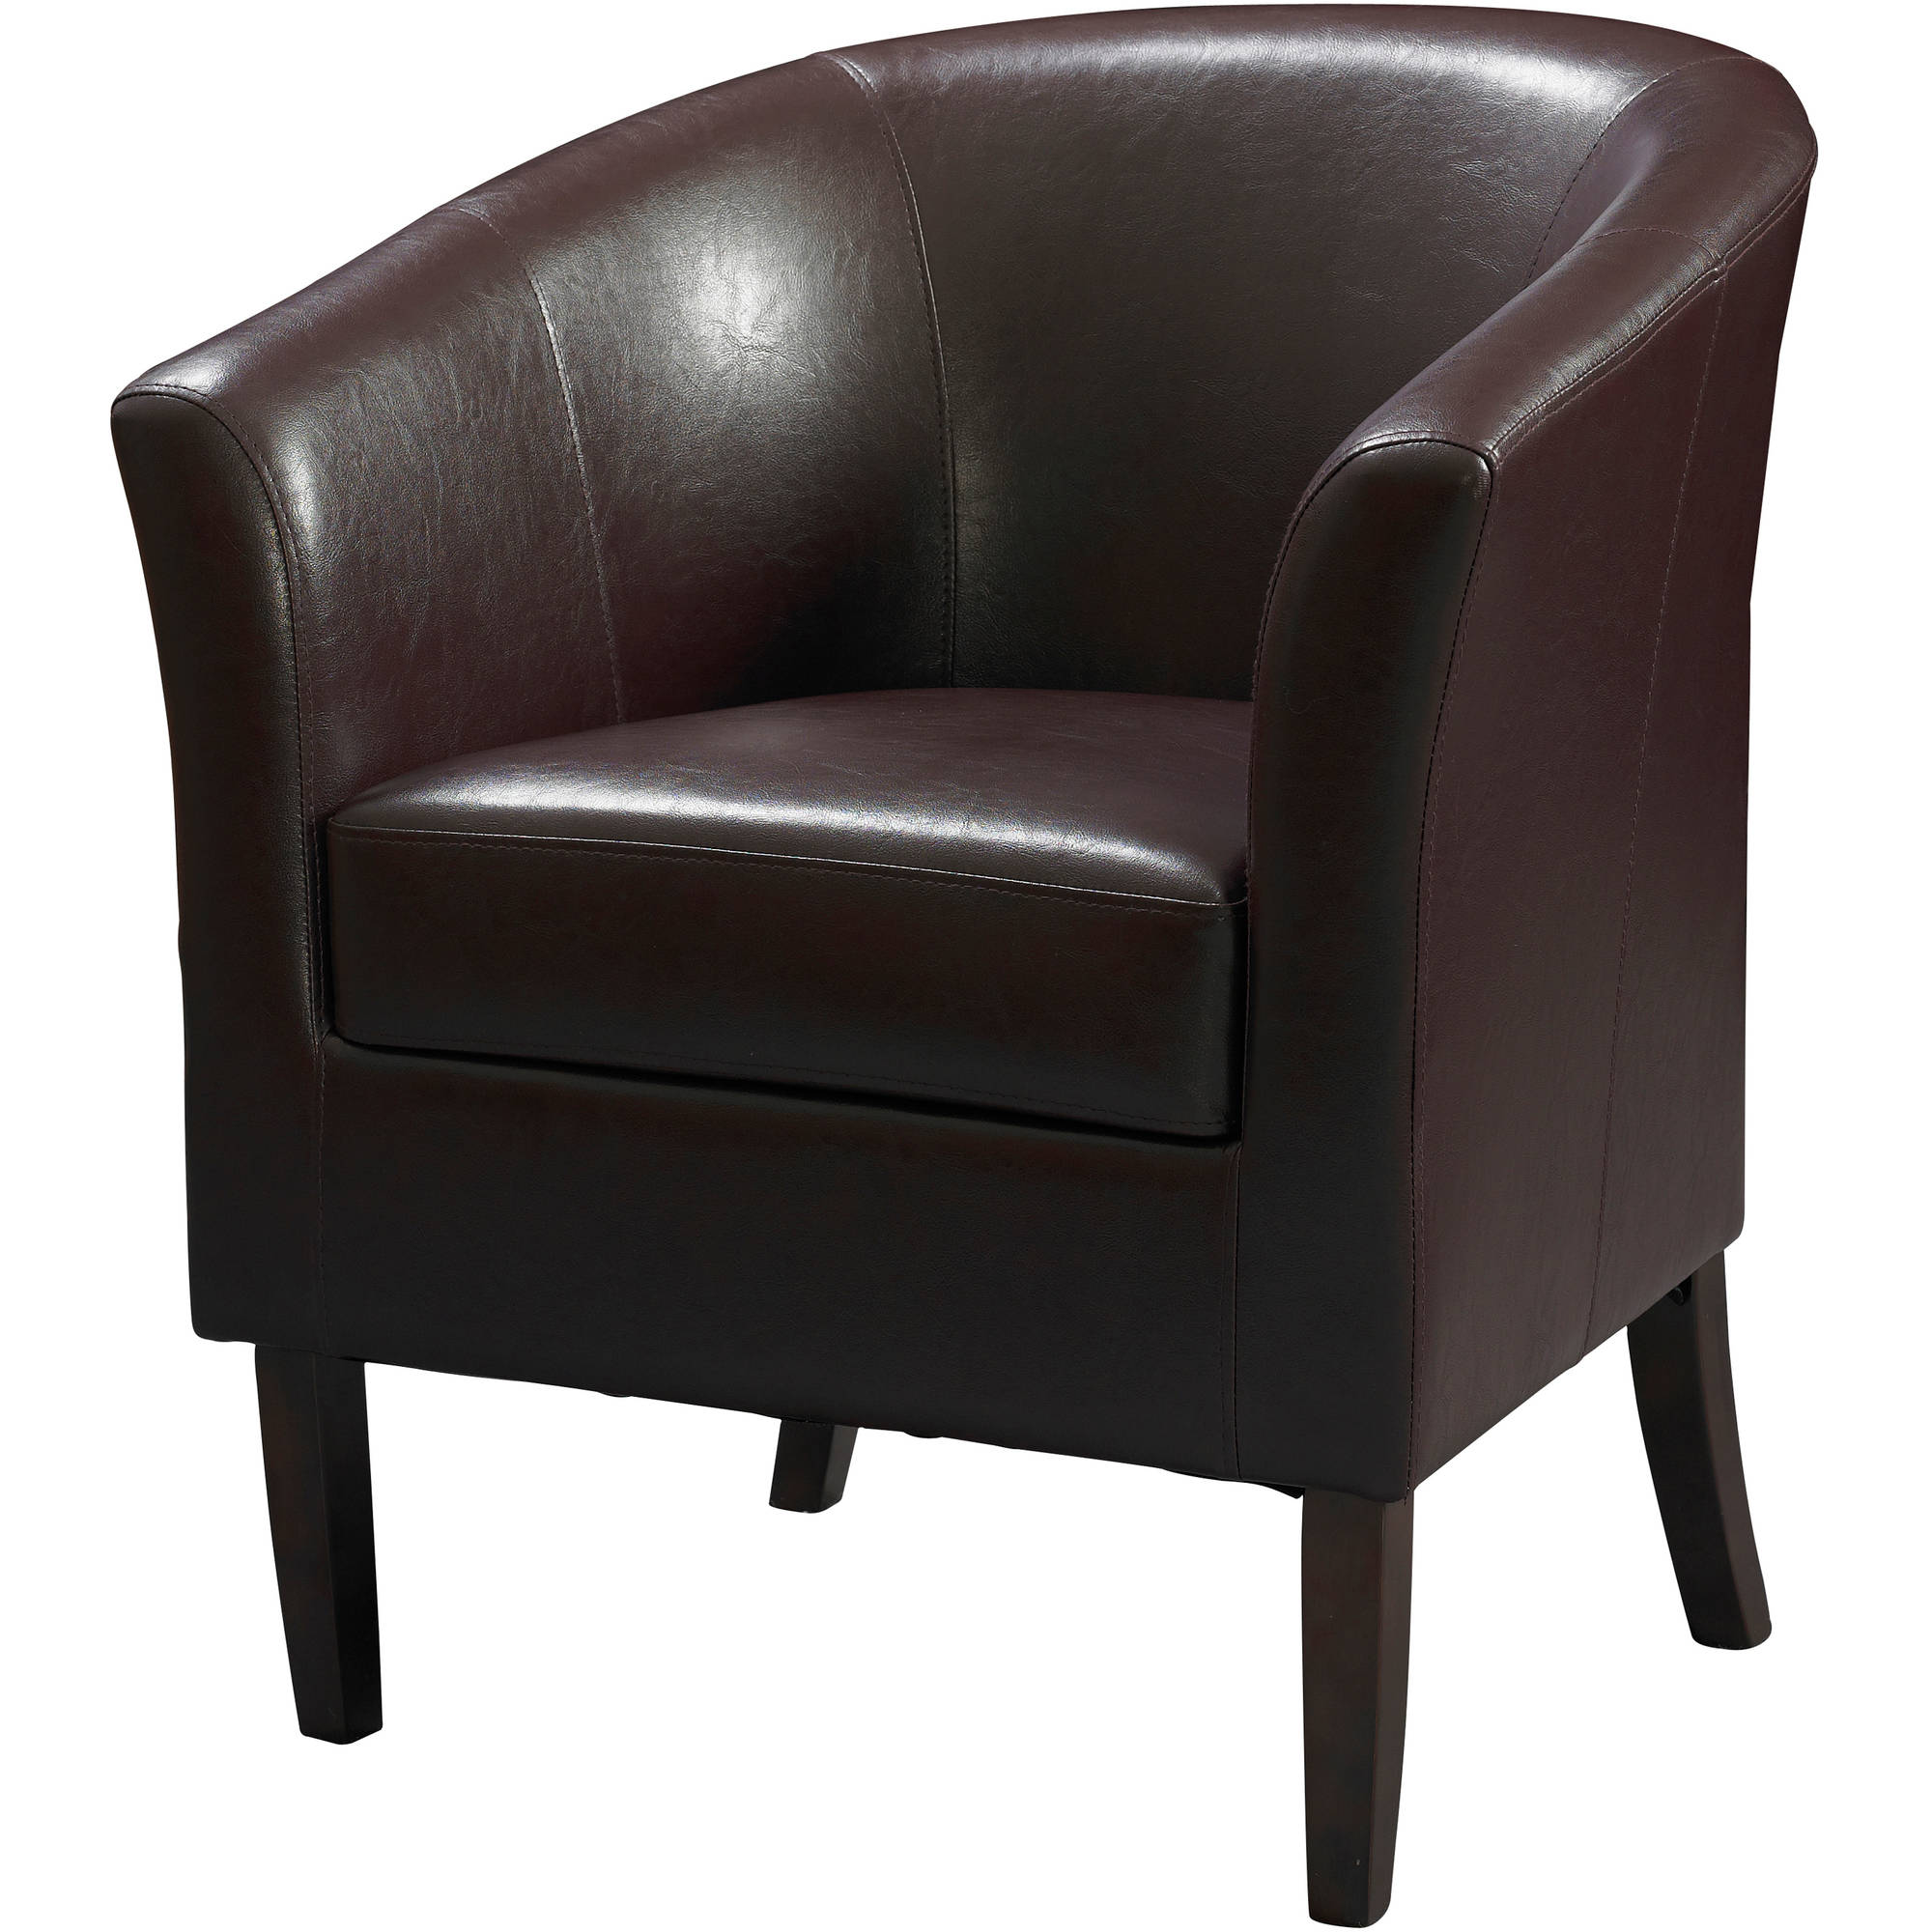 Linon Simon Club Chair, Blackberry, 19.5 inch Seat Height